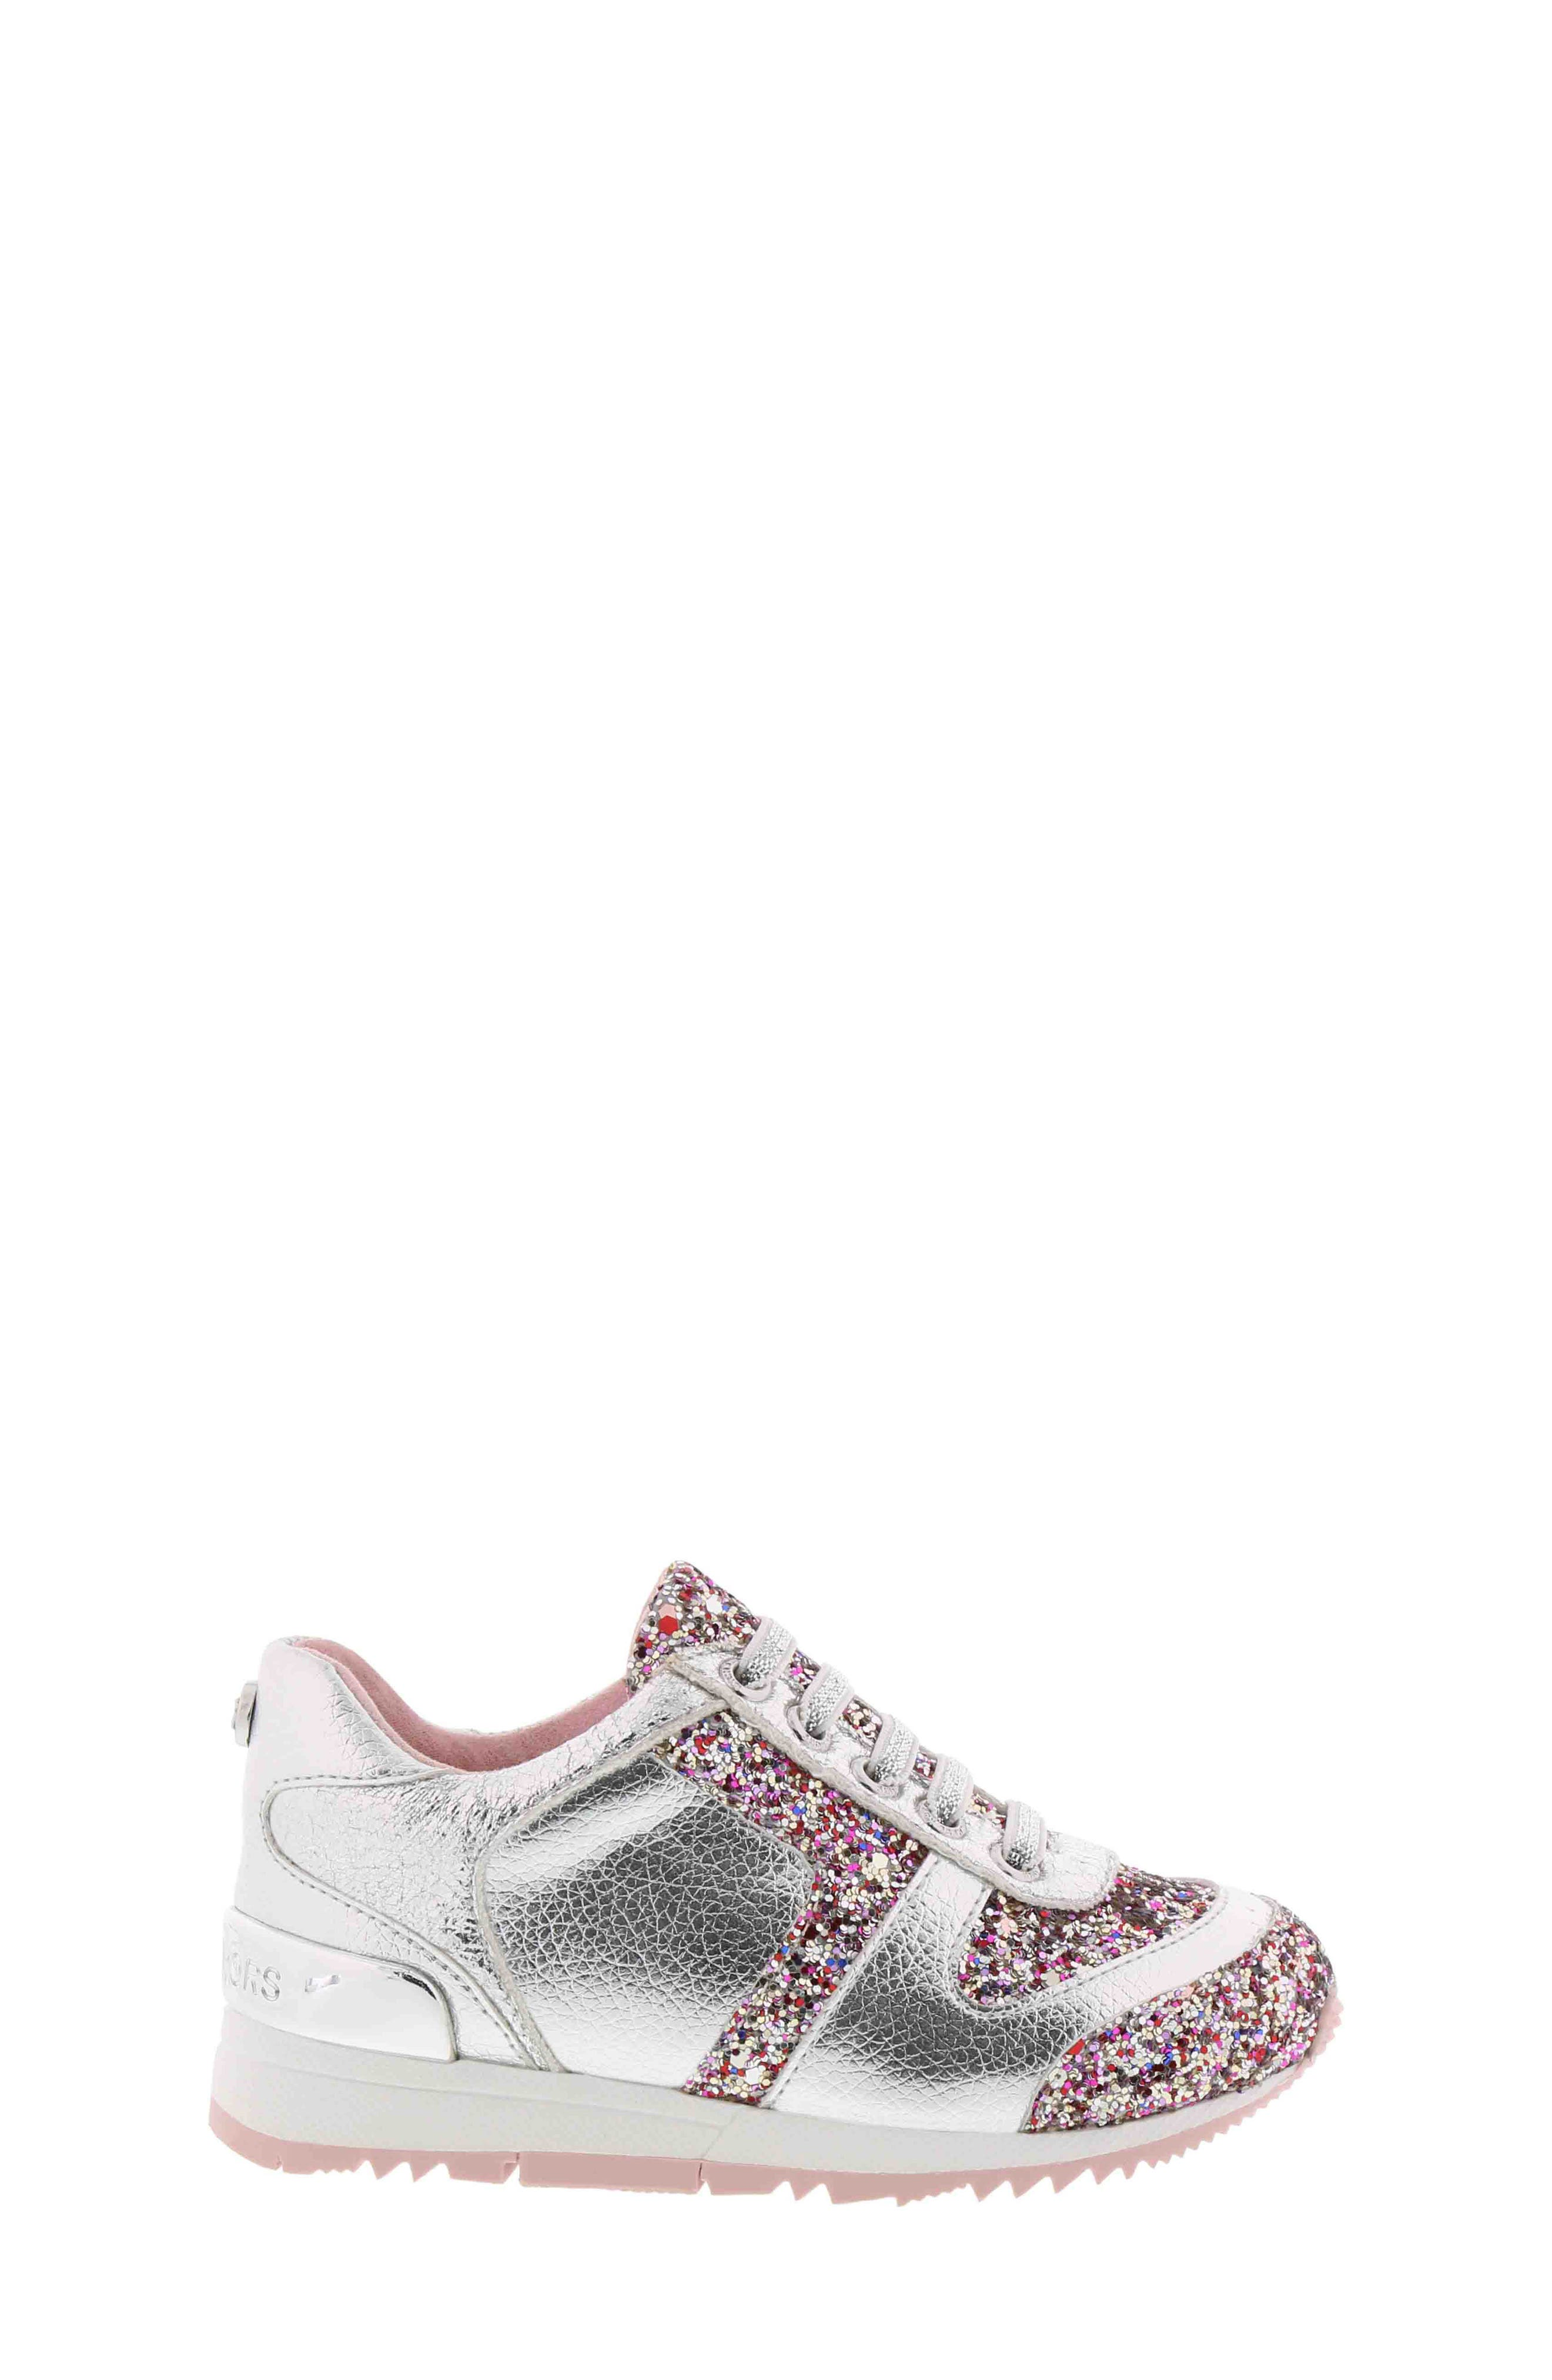 Allie Beatz Glitter Sneaker,                             Alternate thumbnail 3, color,                             SILVER MULTI